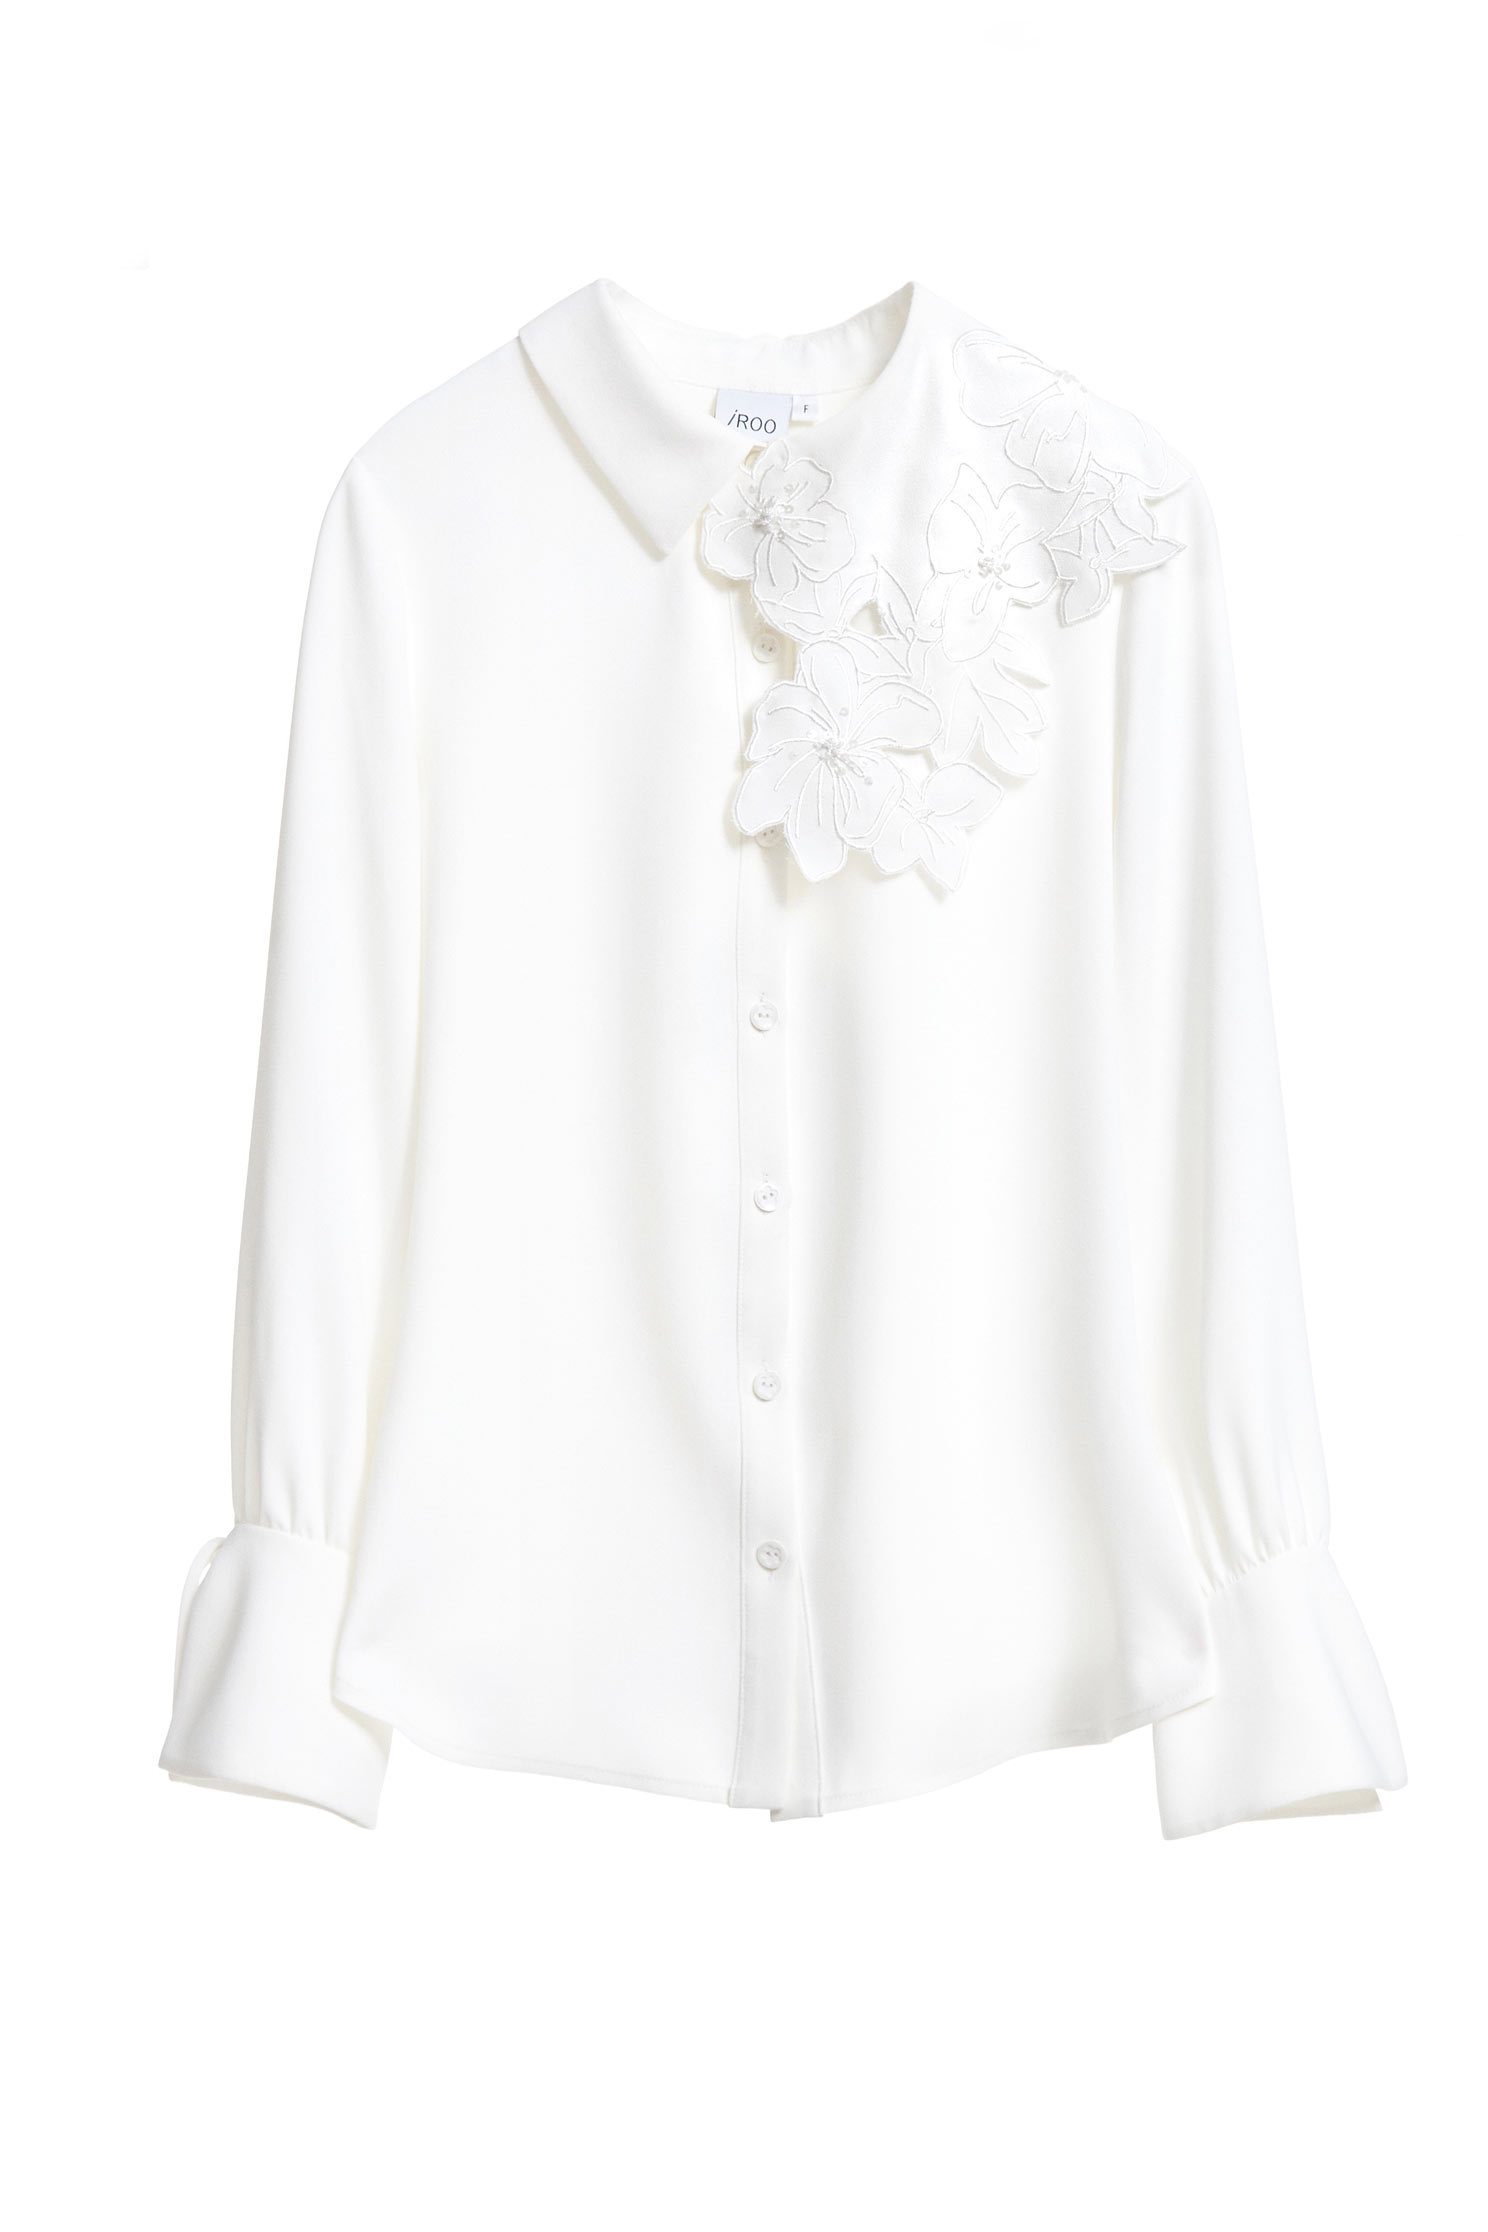 floral embroidered collared fashion blouse